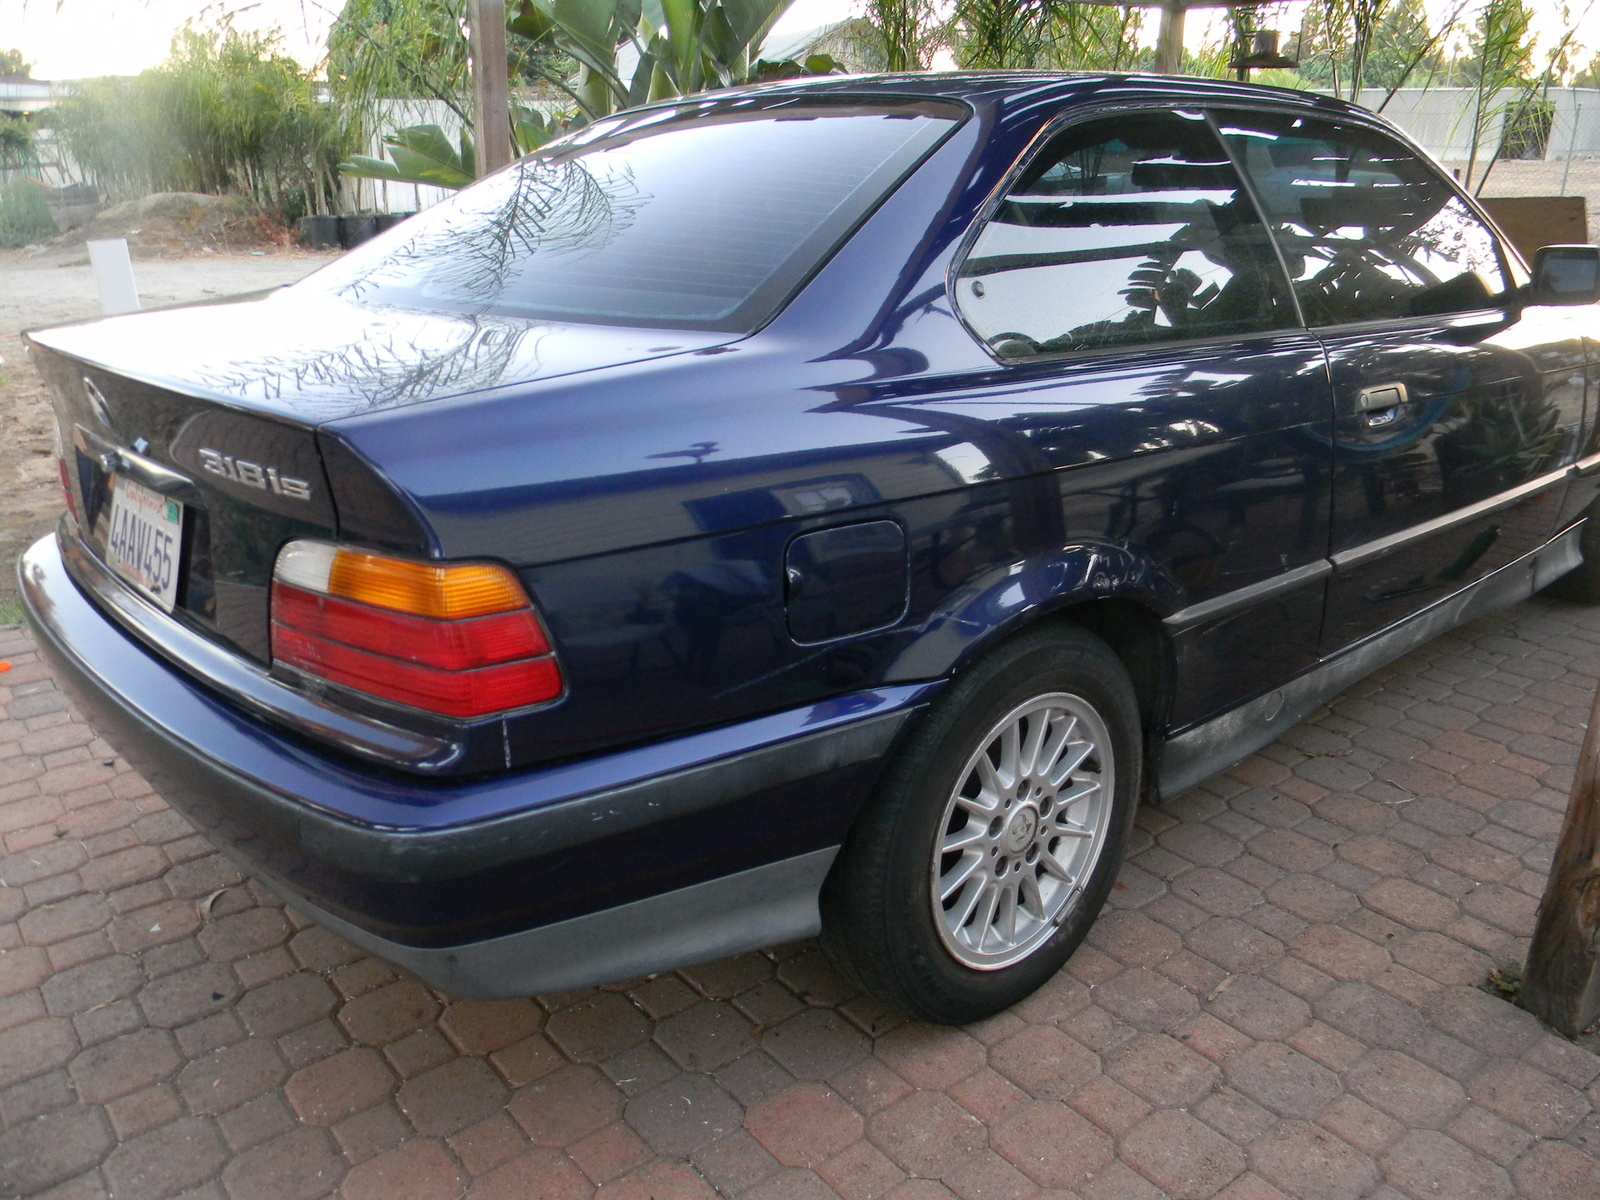 BMW 3 series 318is 1995 photo - 10